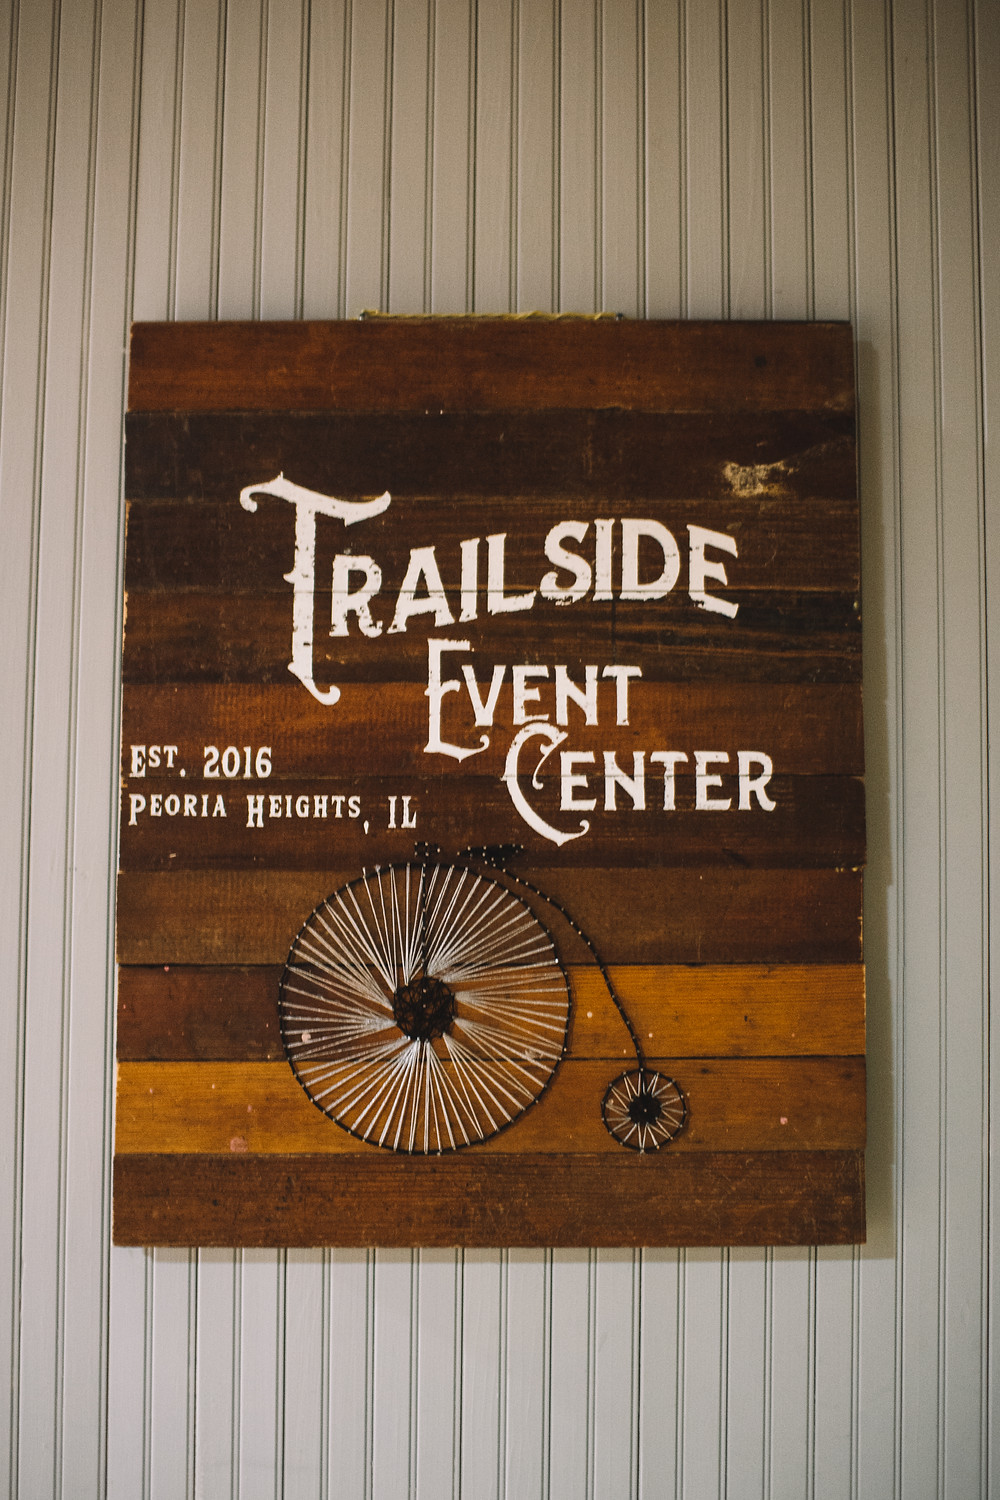 Trailside, Event, Center, Peoria, Illinois, Wedding, Peoria Heights, Reception, Photography, Soul Focus, Photos, Affordable, Lifestyle, Lincoln, IL, Clinton, Springfield, Bloomington, Normal, St Louis, Indianapolis, Brownsberg, Decatur